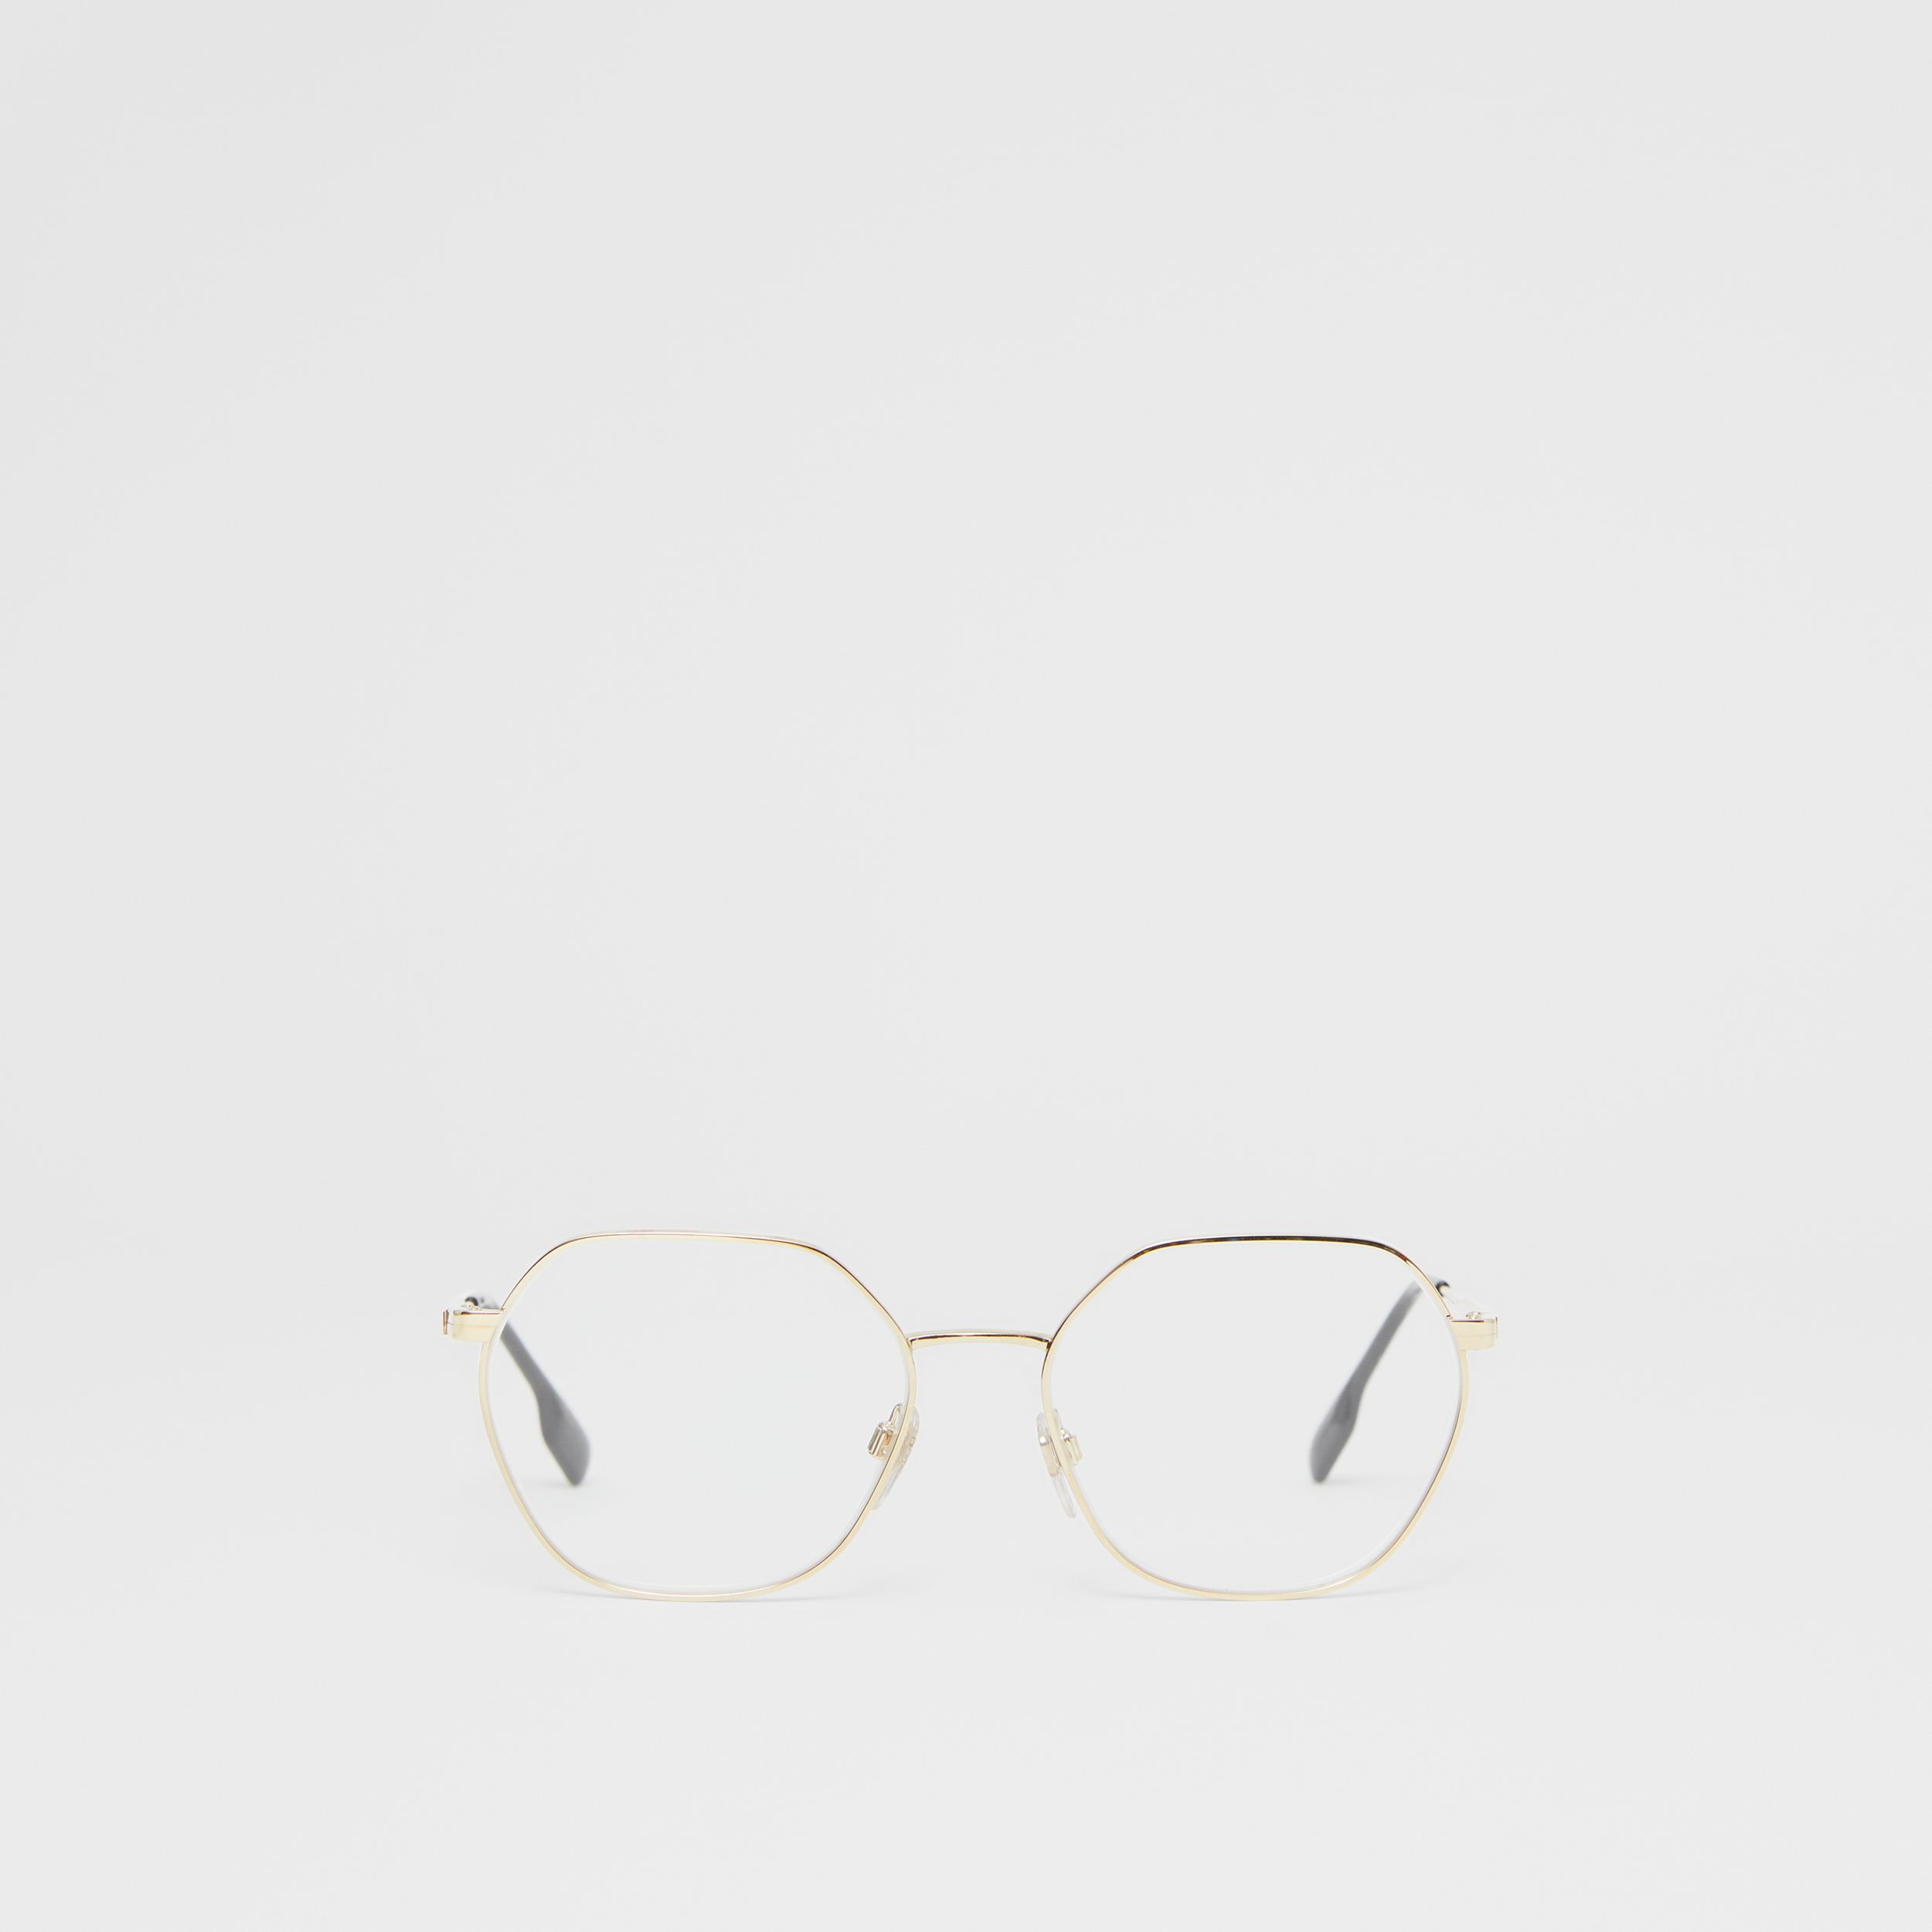 Geometric Optical Frames in Black - Women | Burberry - 1